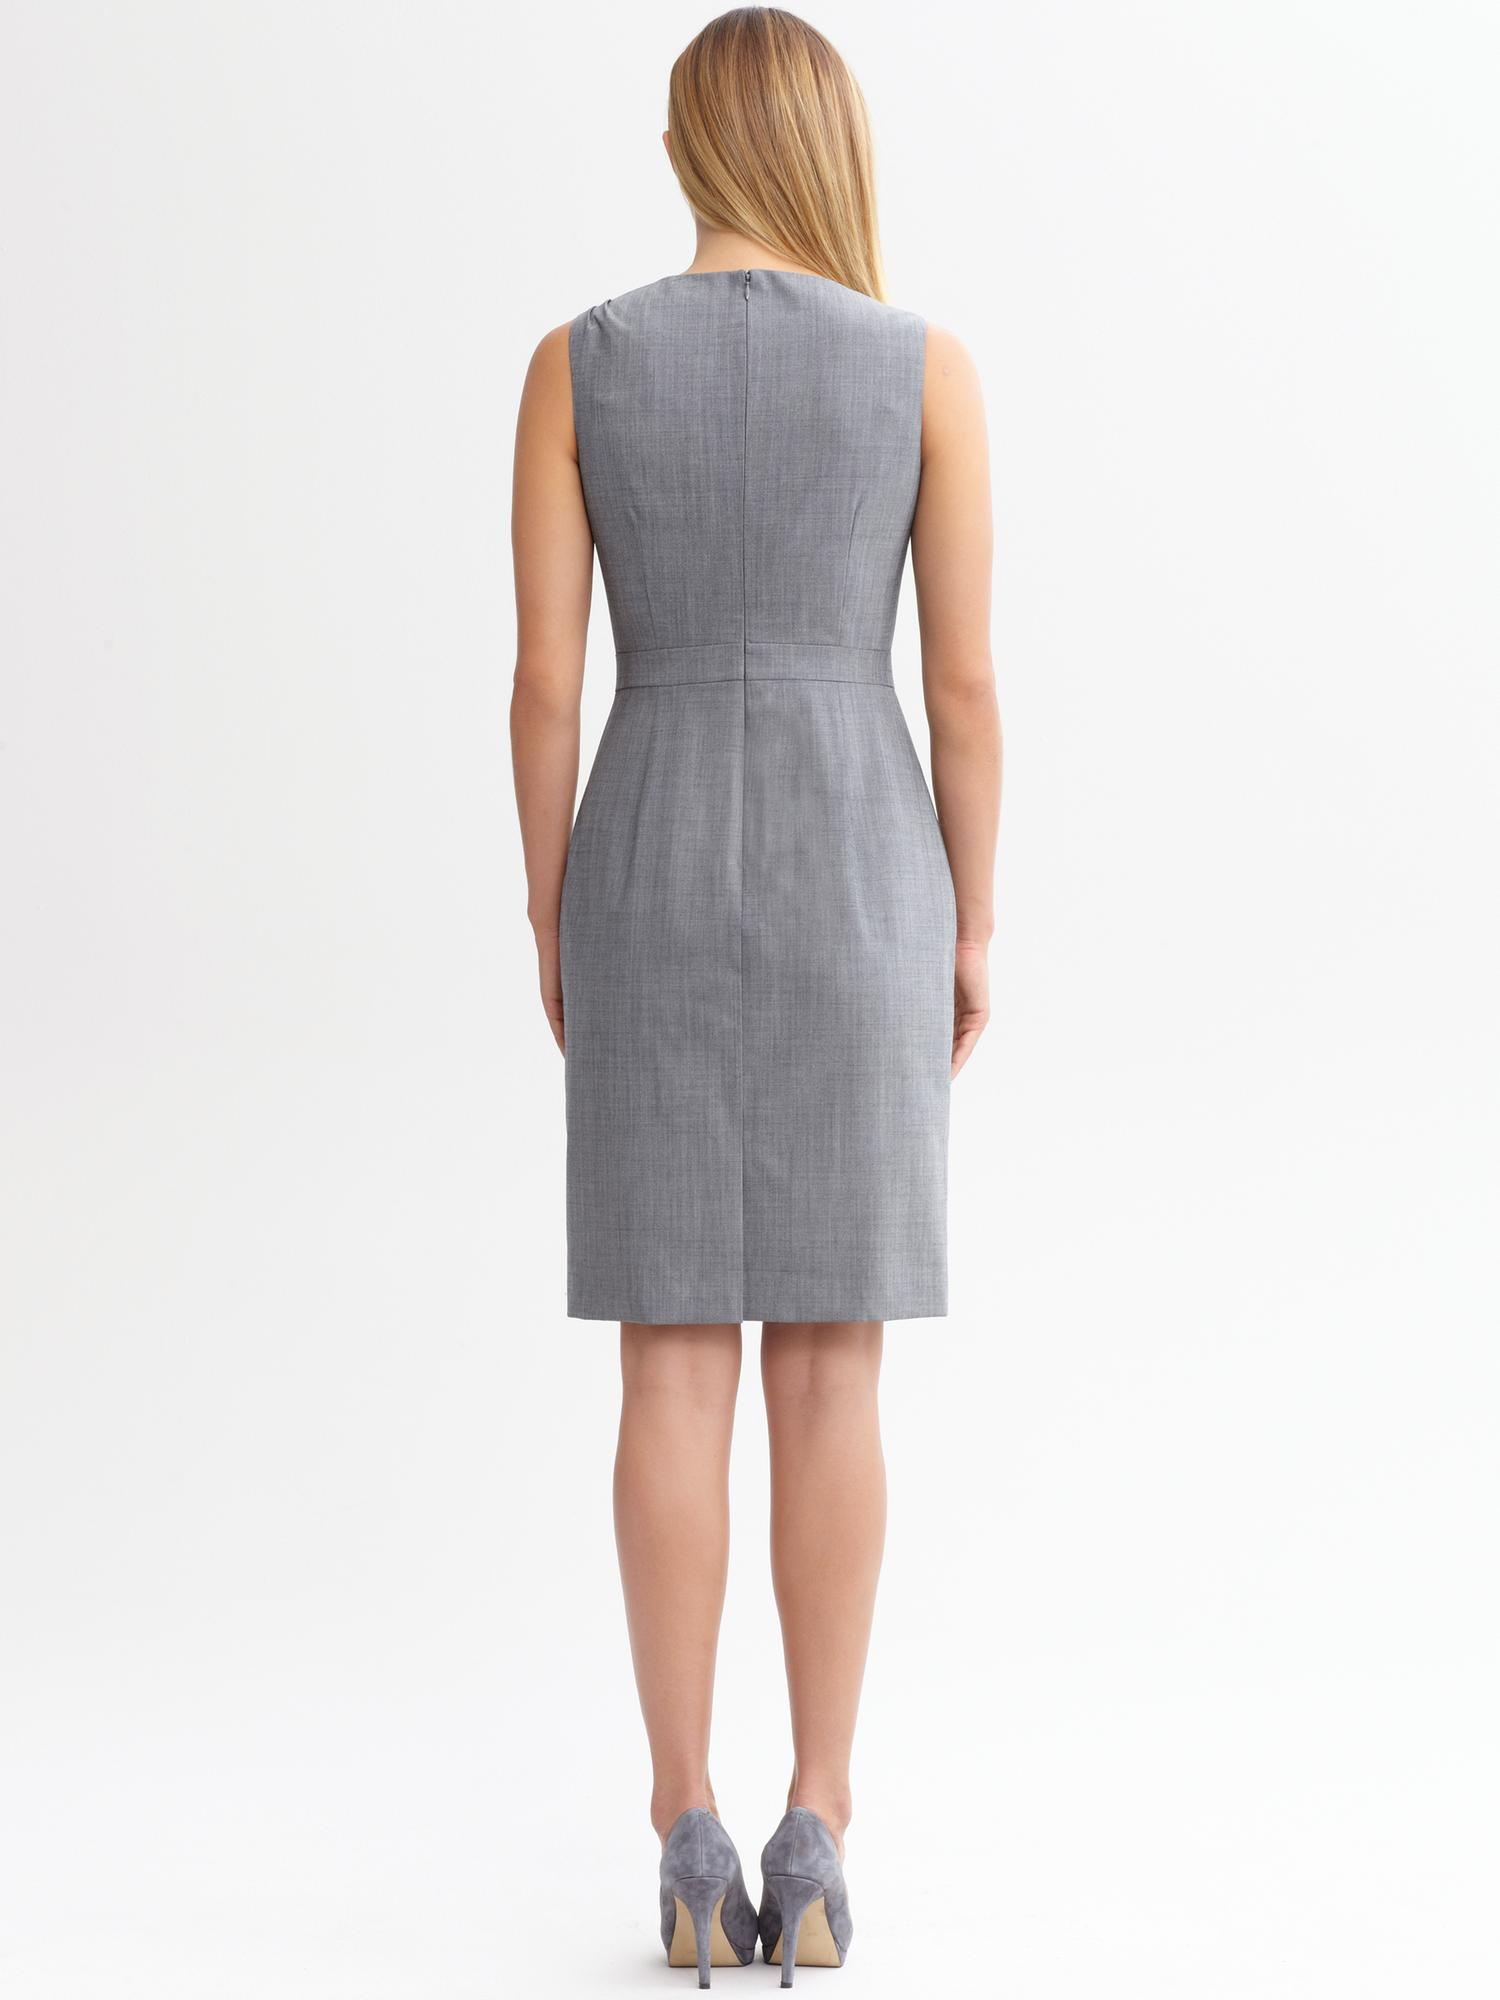 Banana Republic Evelyn Light Weight Wool Dress In Grey